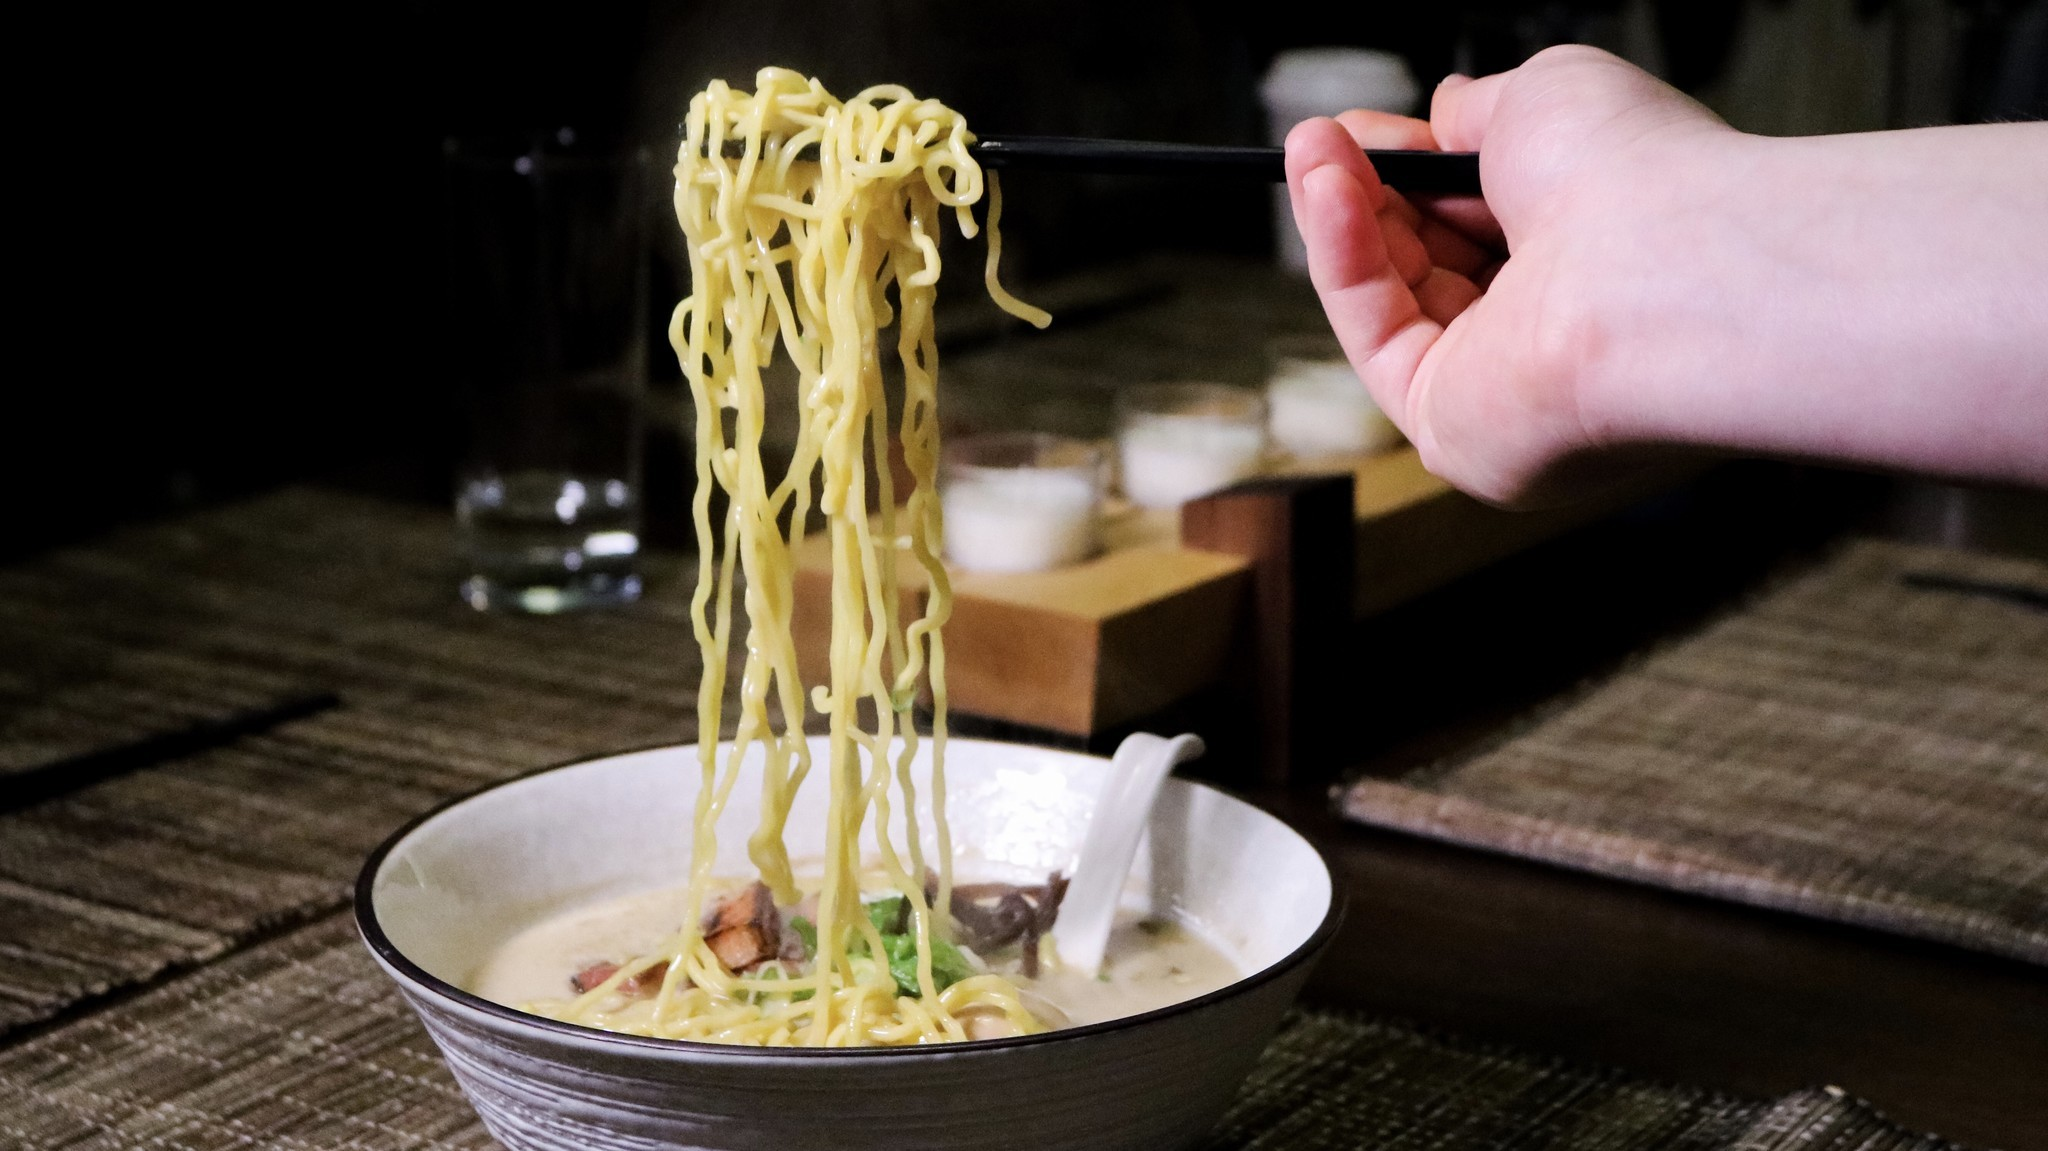 Chicago's reclusive 'Ramen_lord' will pop up at Baconfest with a special bacon ramen